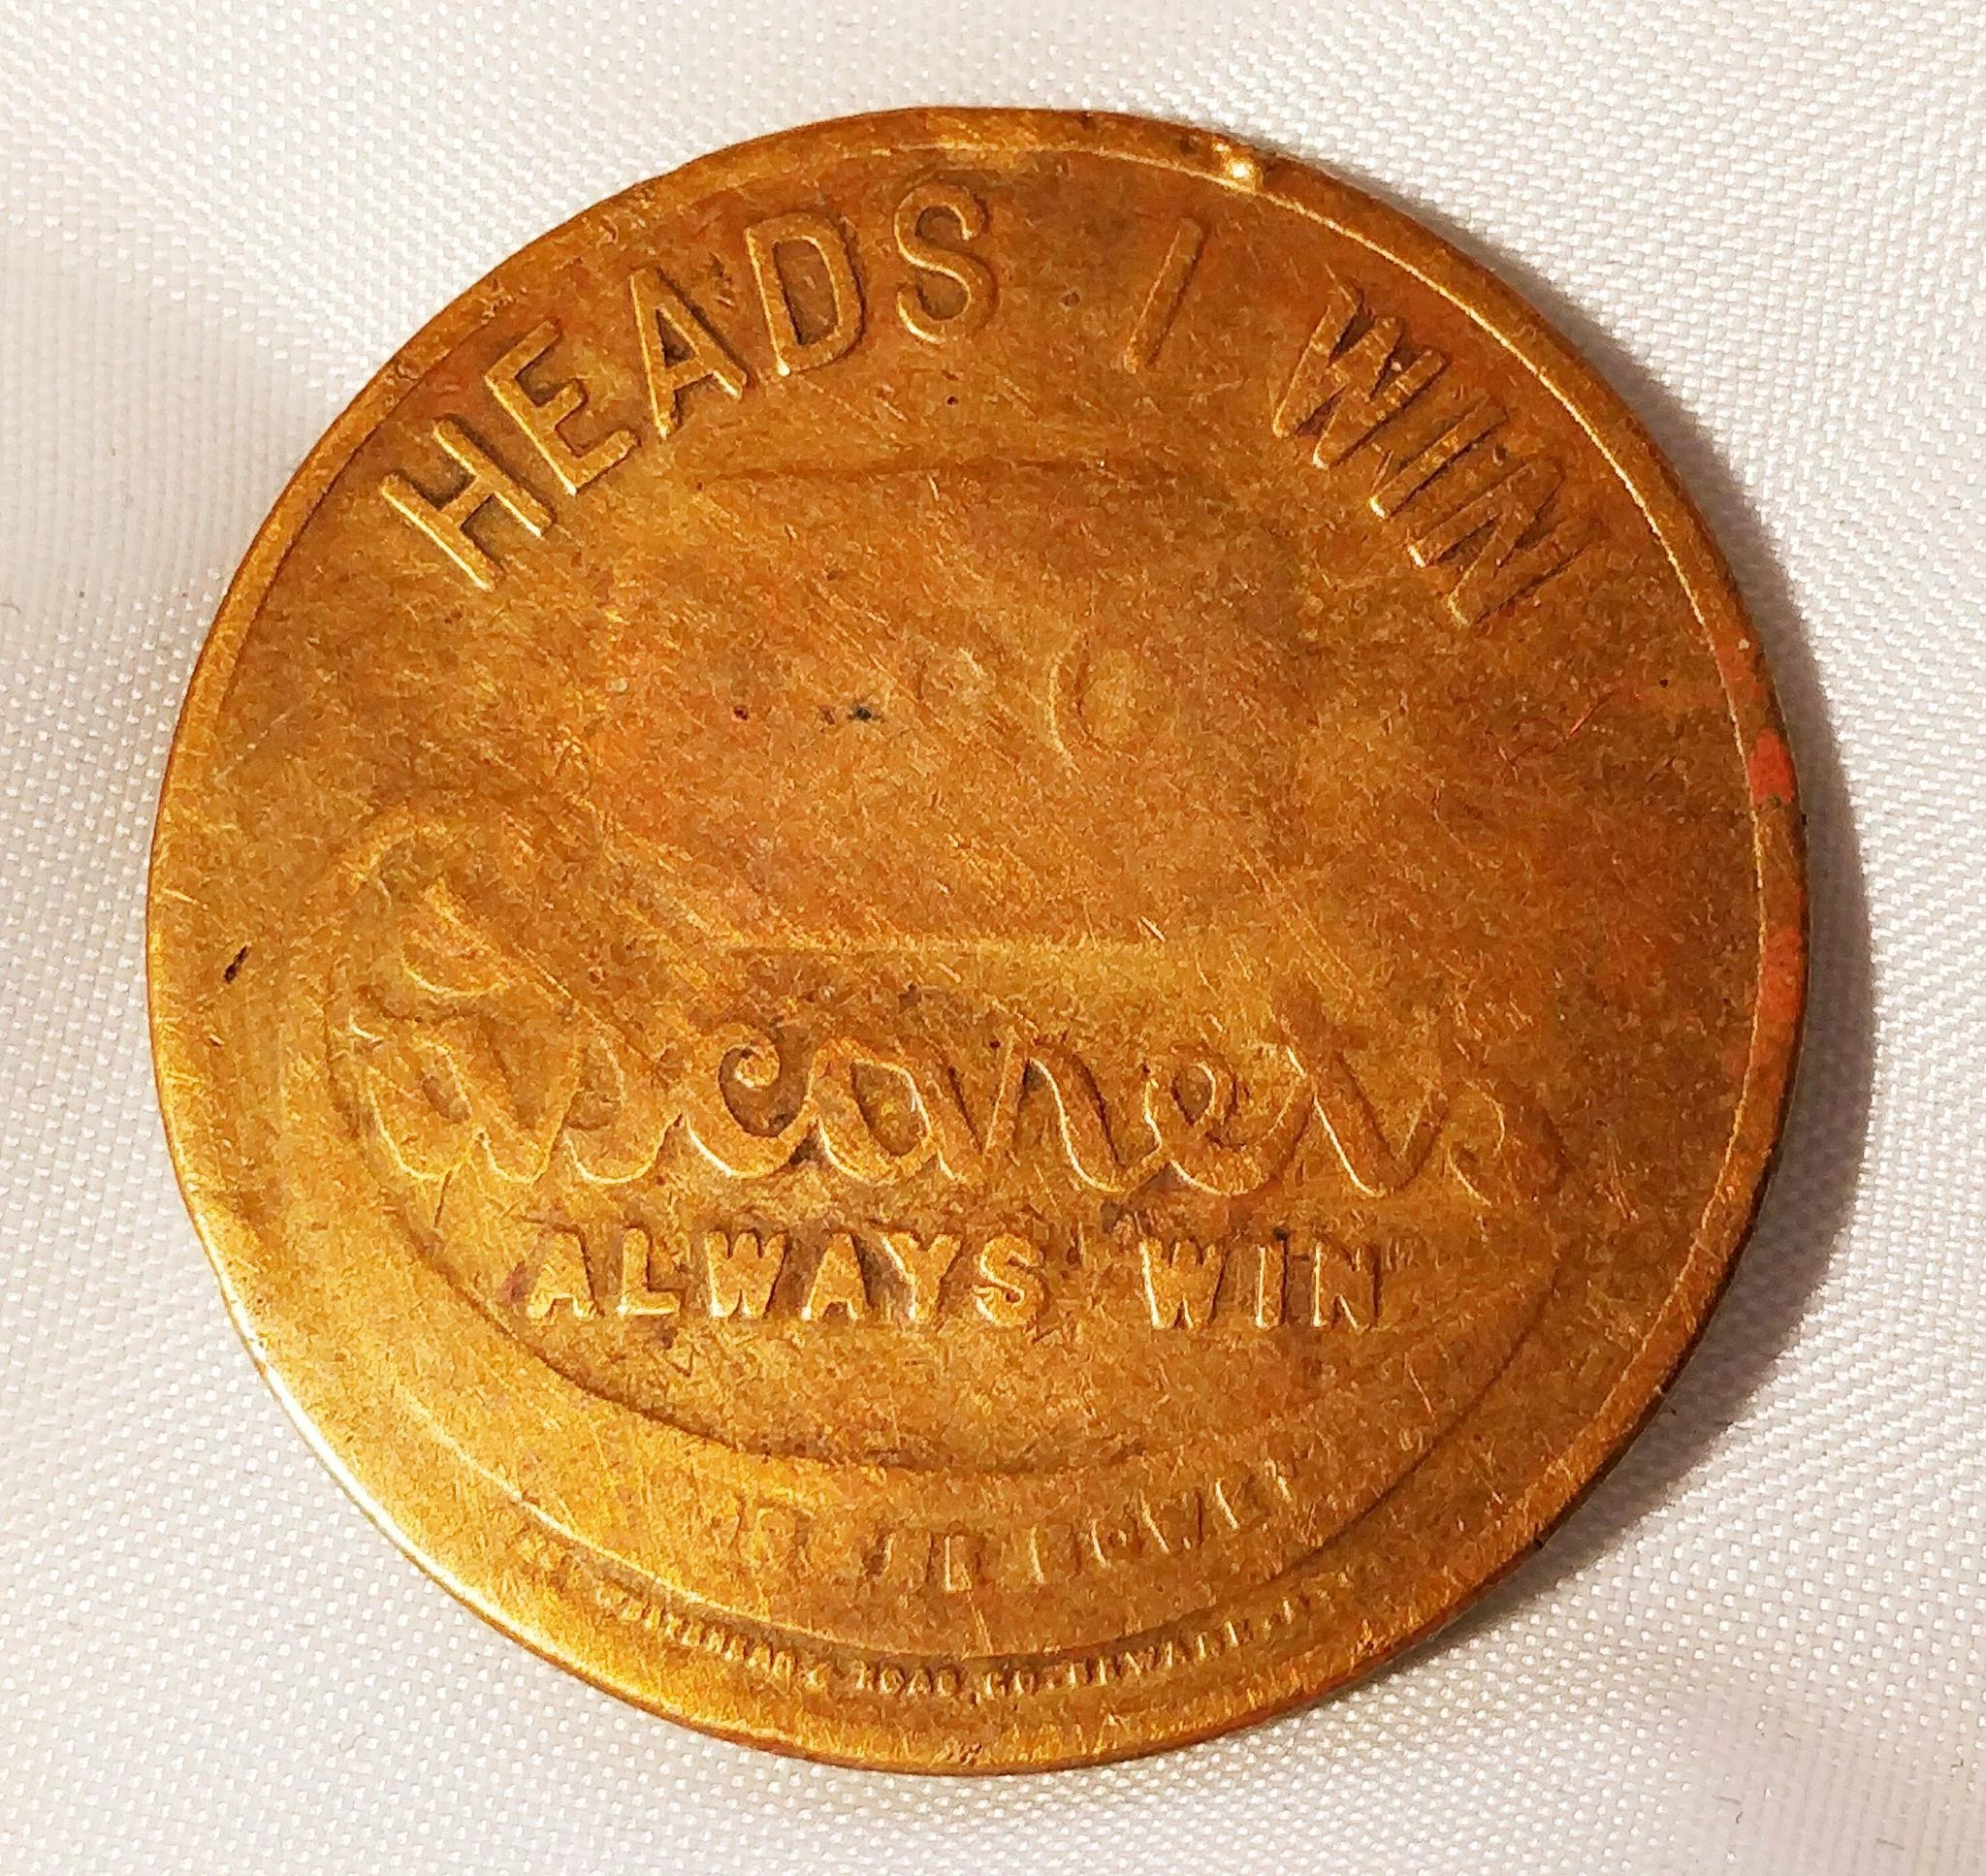 Vintage Coin Heads Tail Win Lose Novelty Flipping Cherub